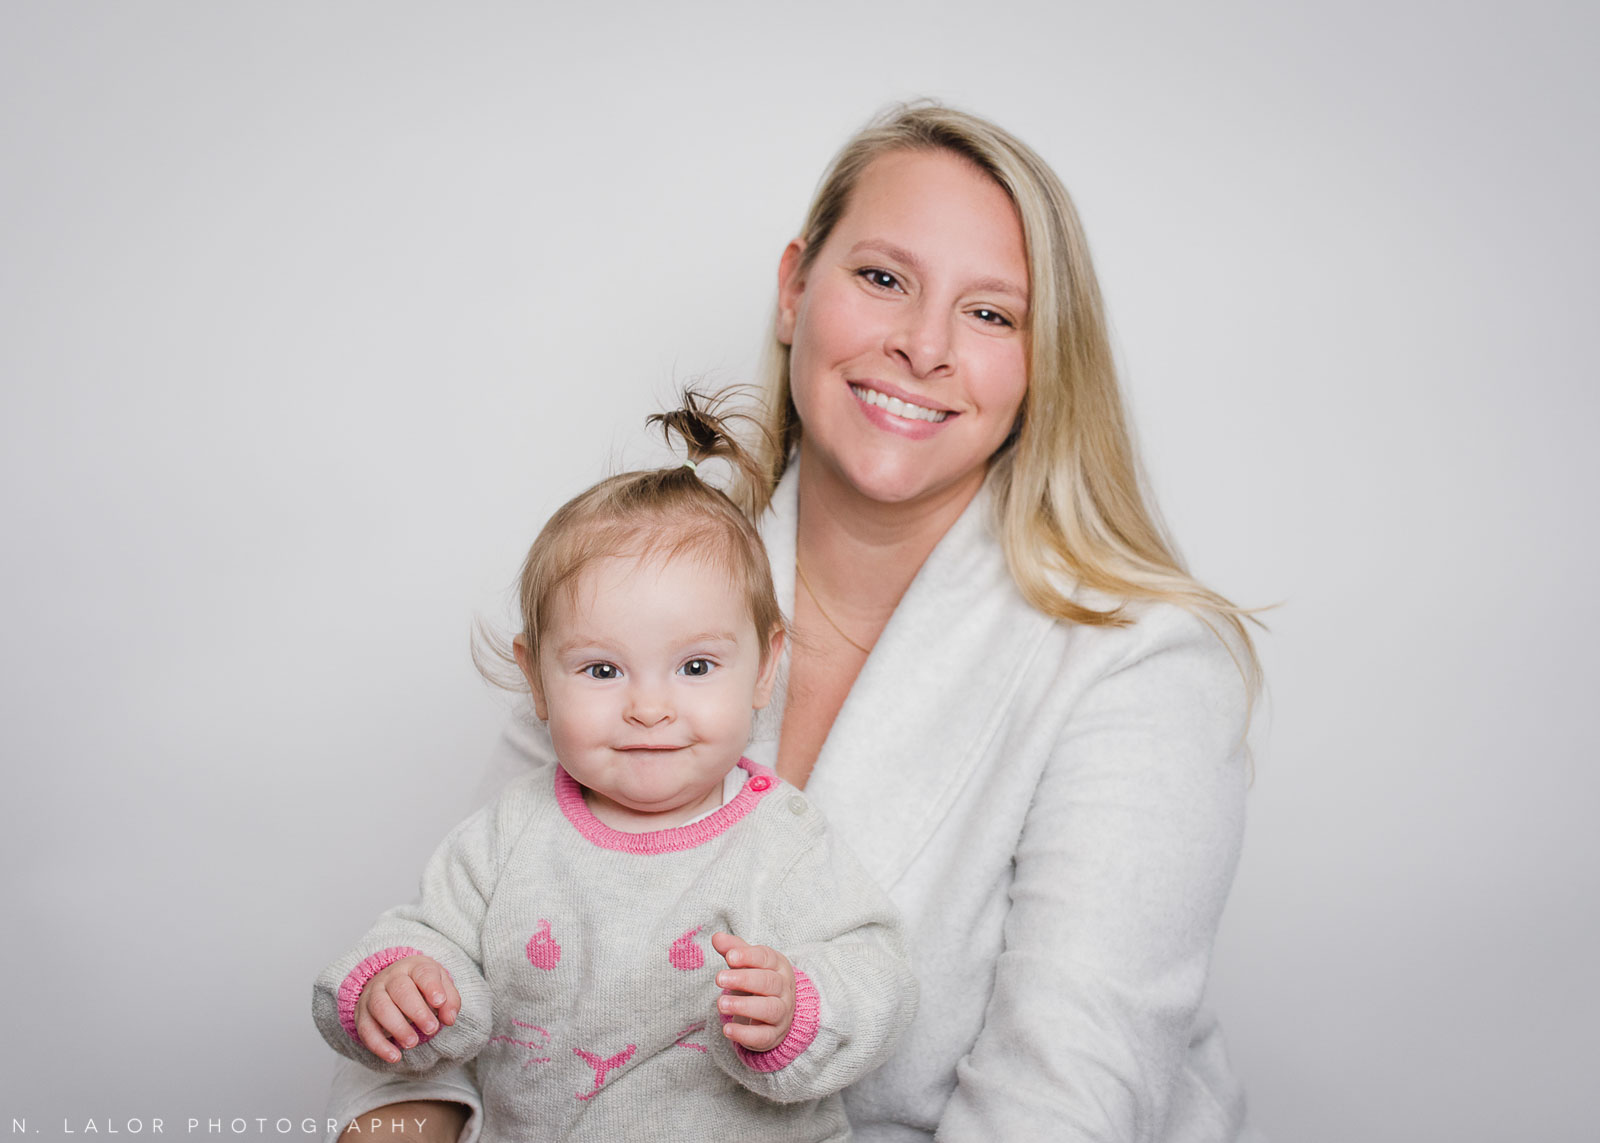 Mom with her baby. Mother's Day Mini Sessions with N. Lalor Photography. At Ella & Henry children's clothing store in New Canaan, Connecticut.